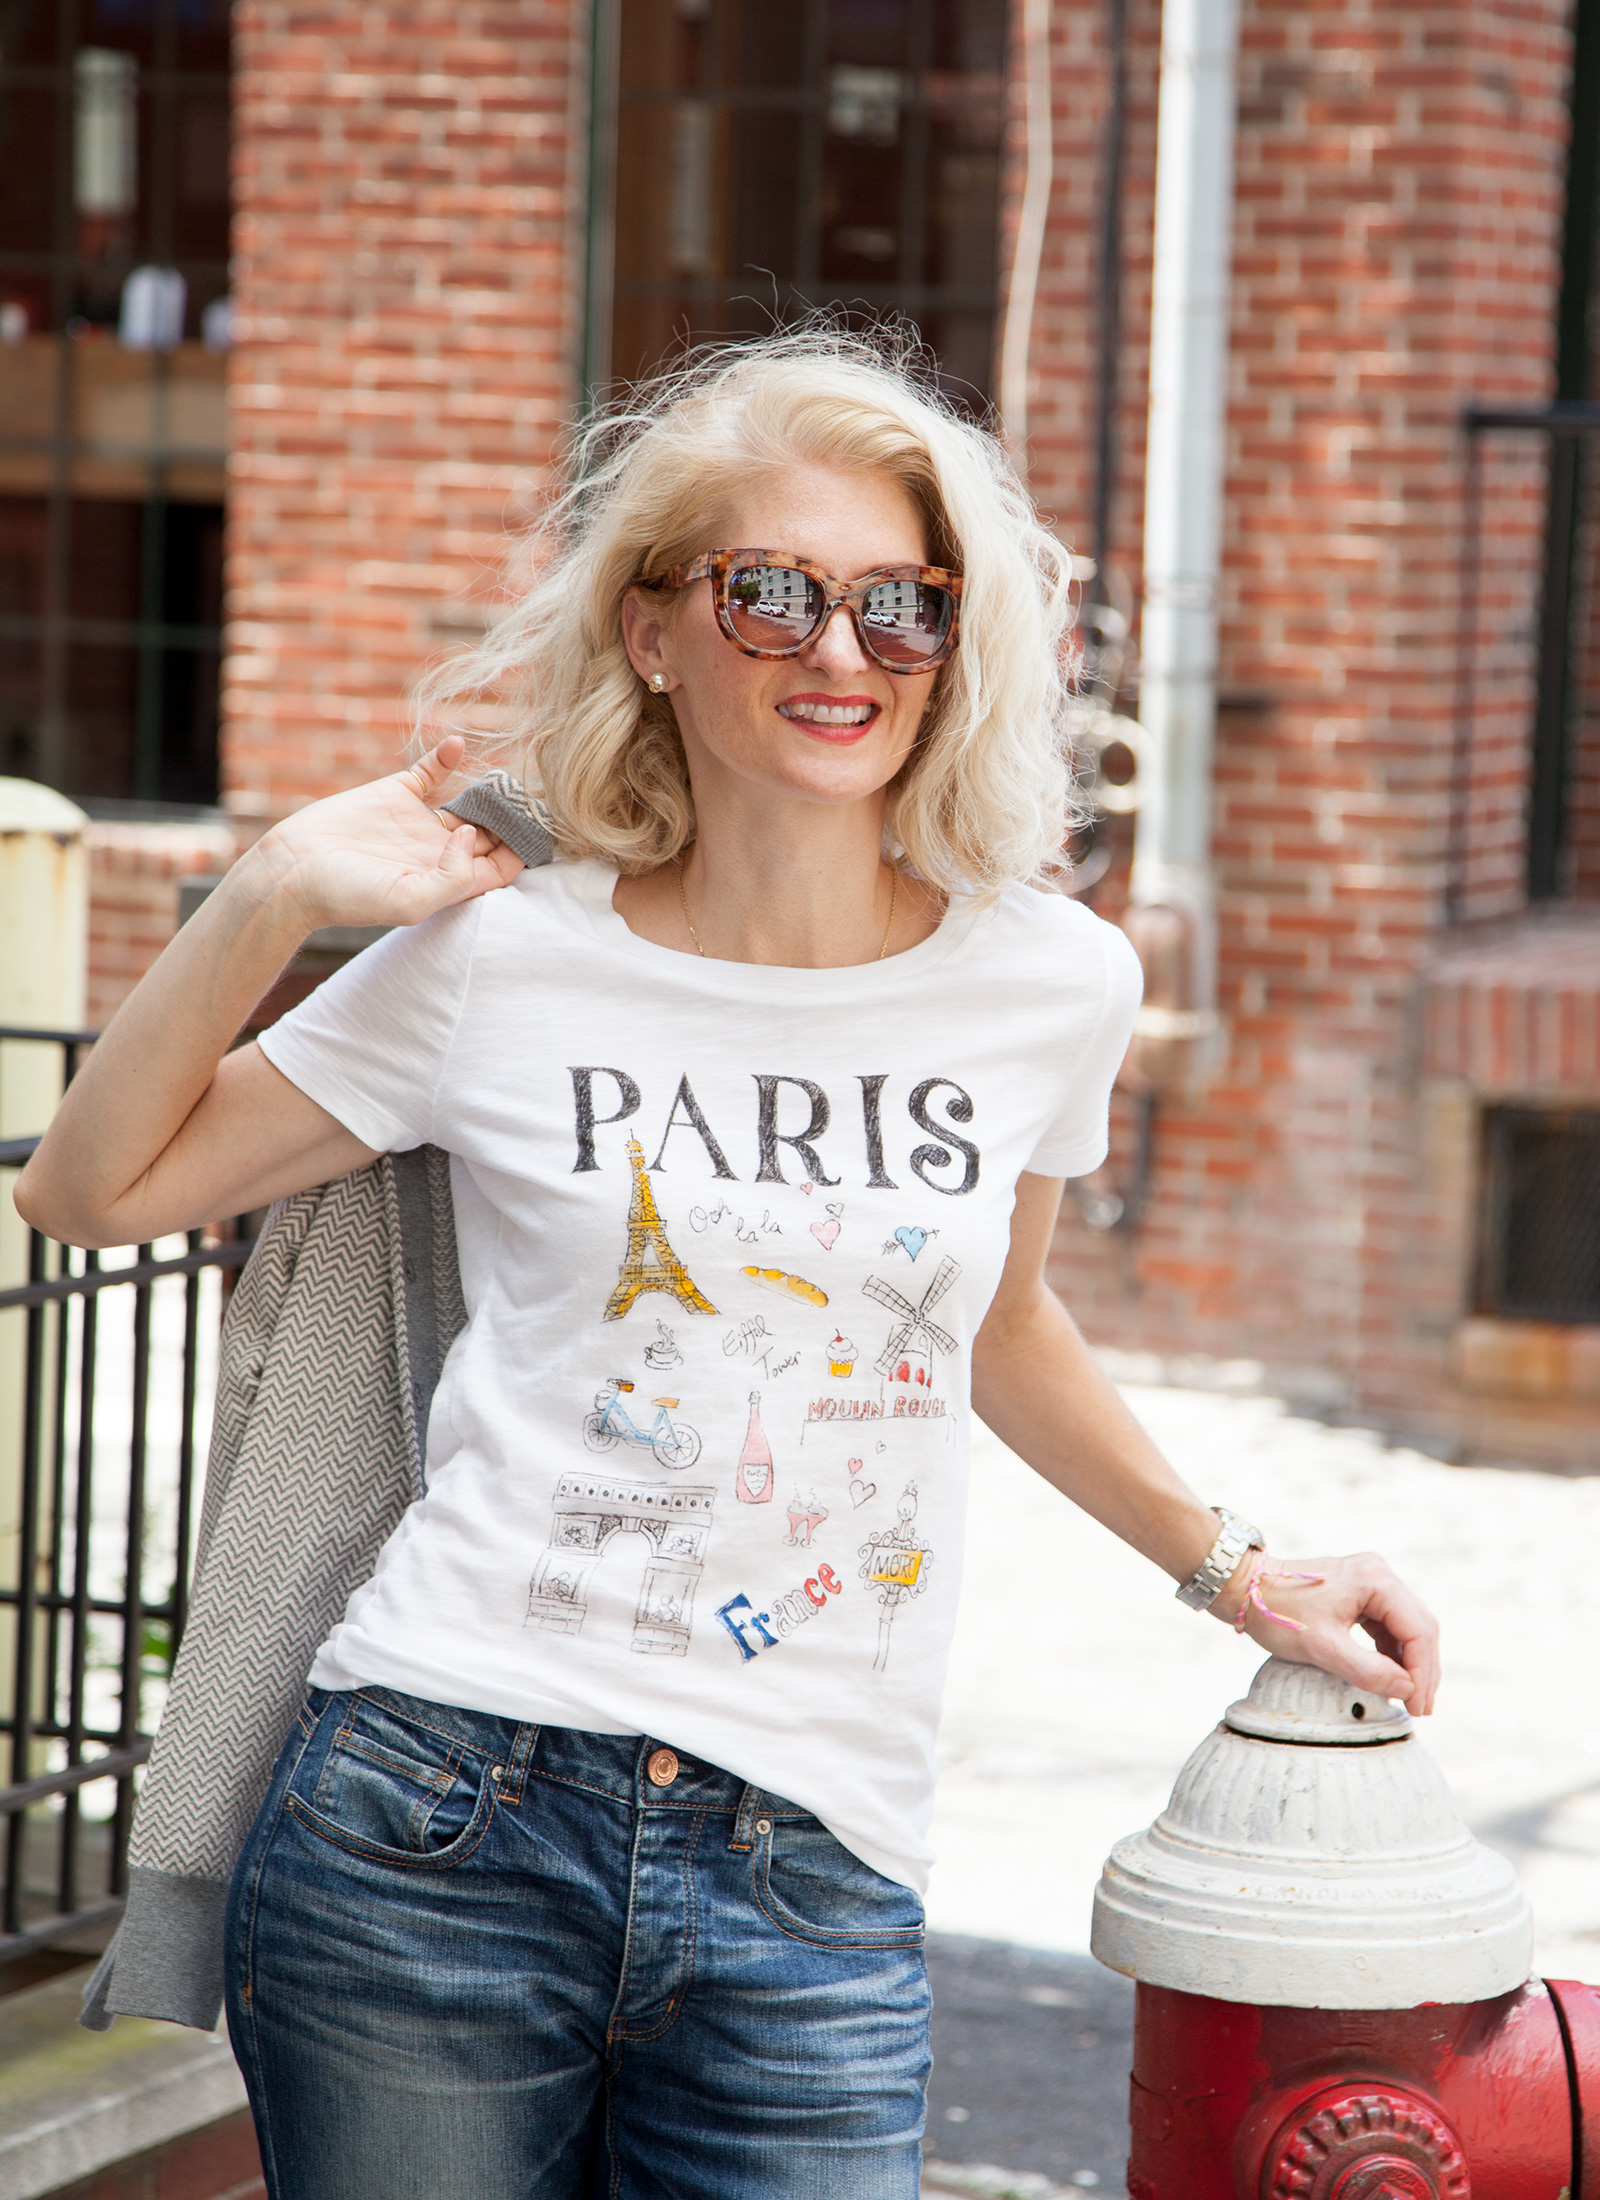 DIY Paris Doodle T-Shirt Photo 1 by Trinkets in Bloom